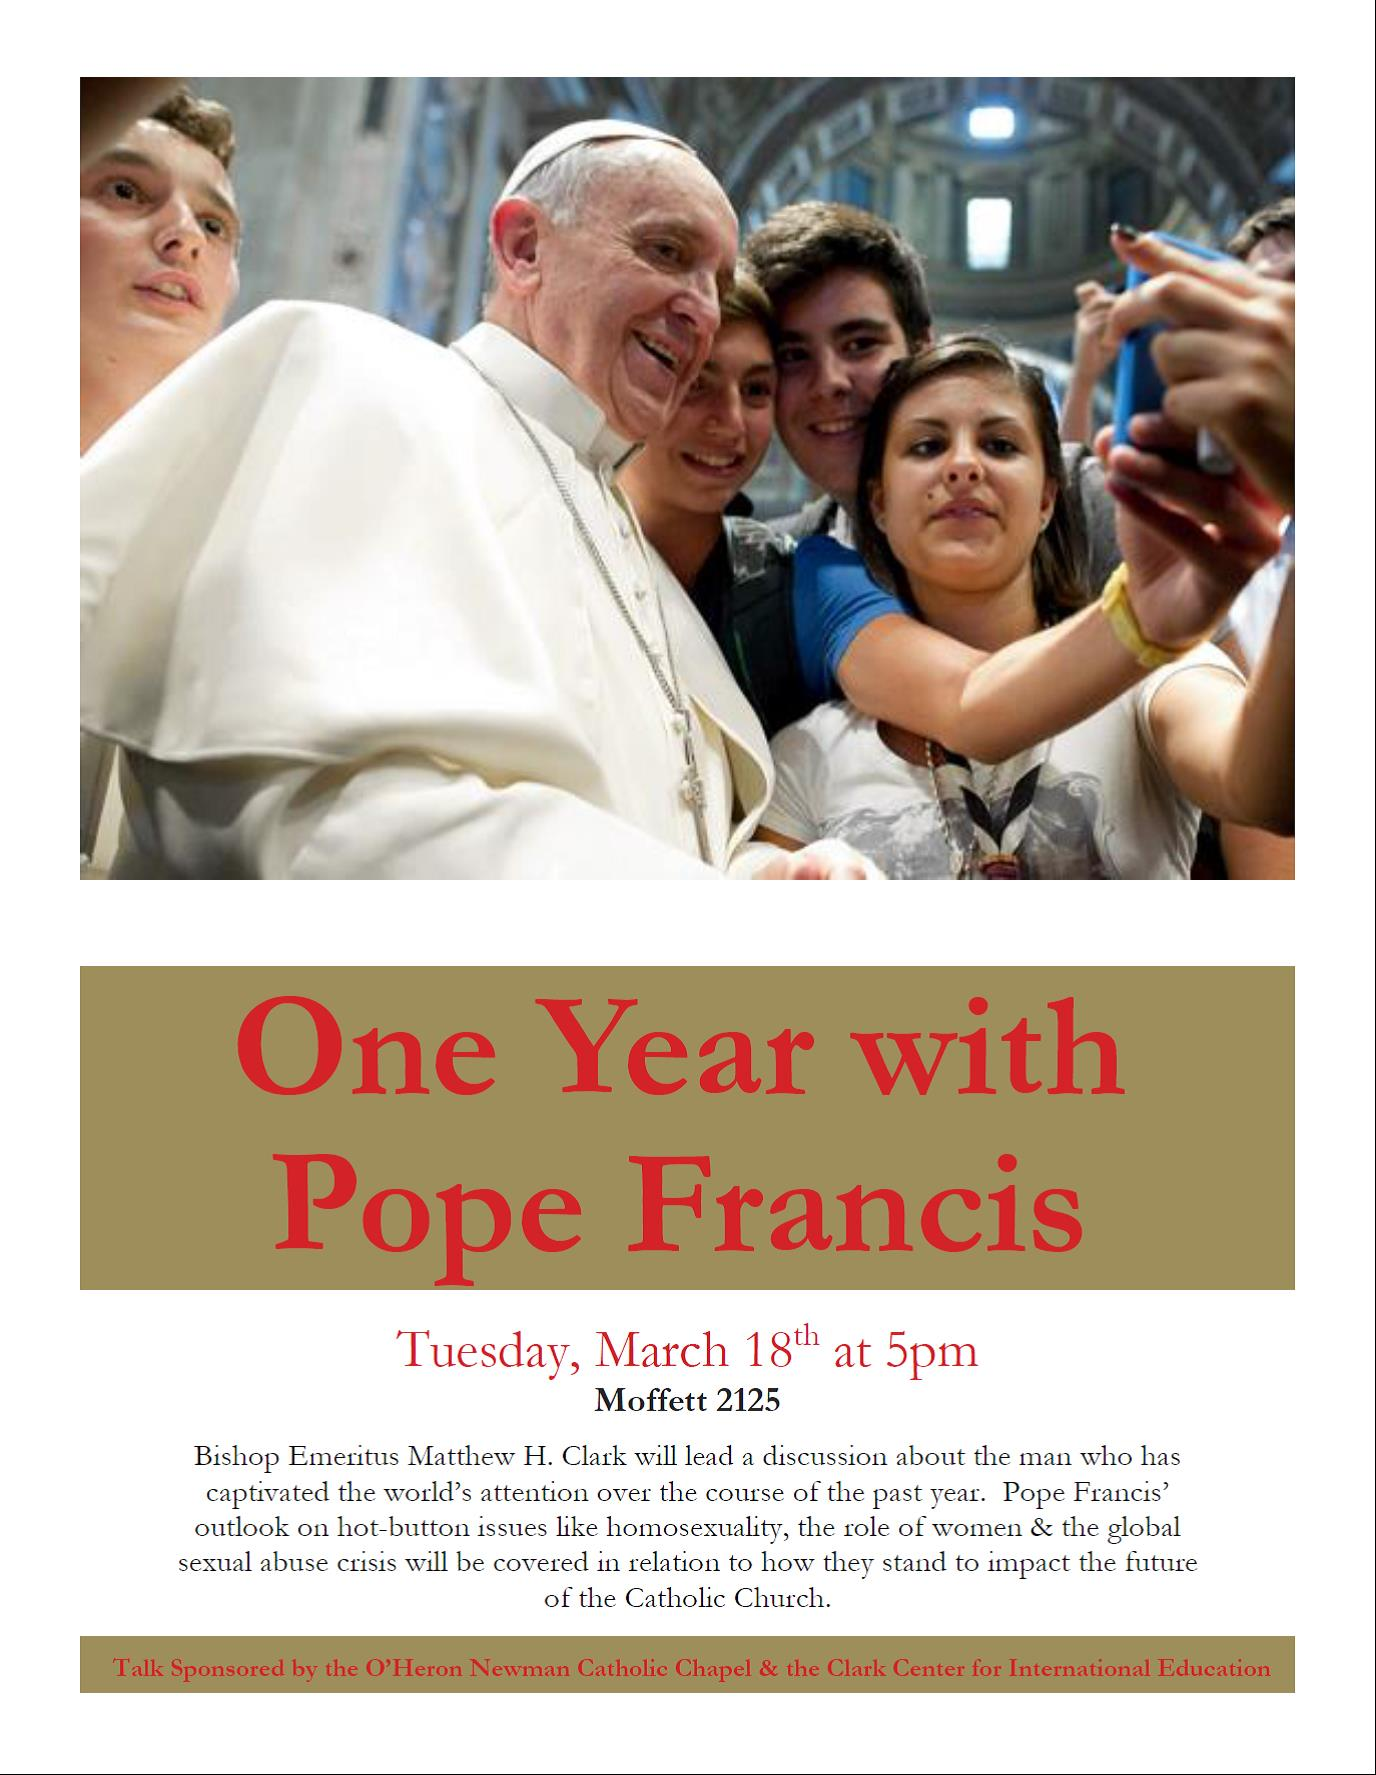 One Year with Pope Francis